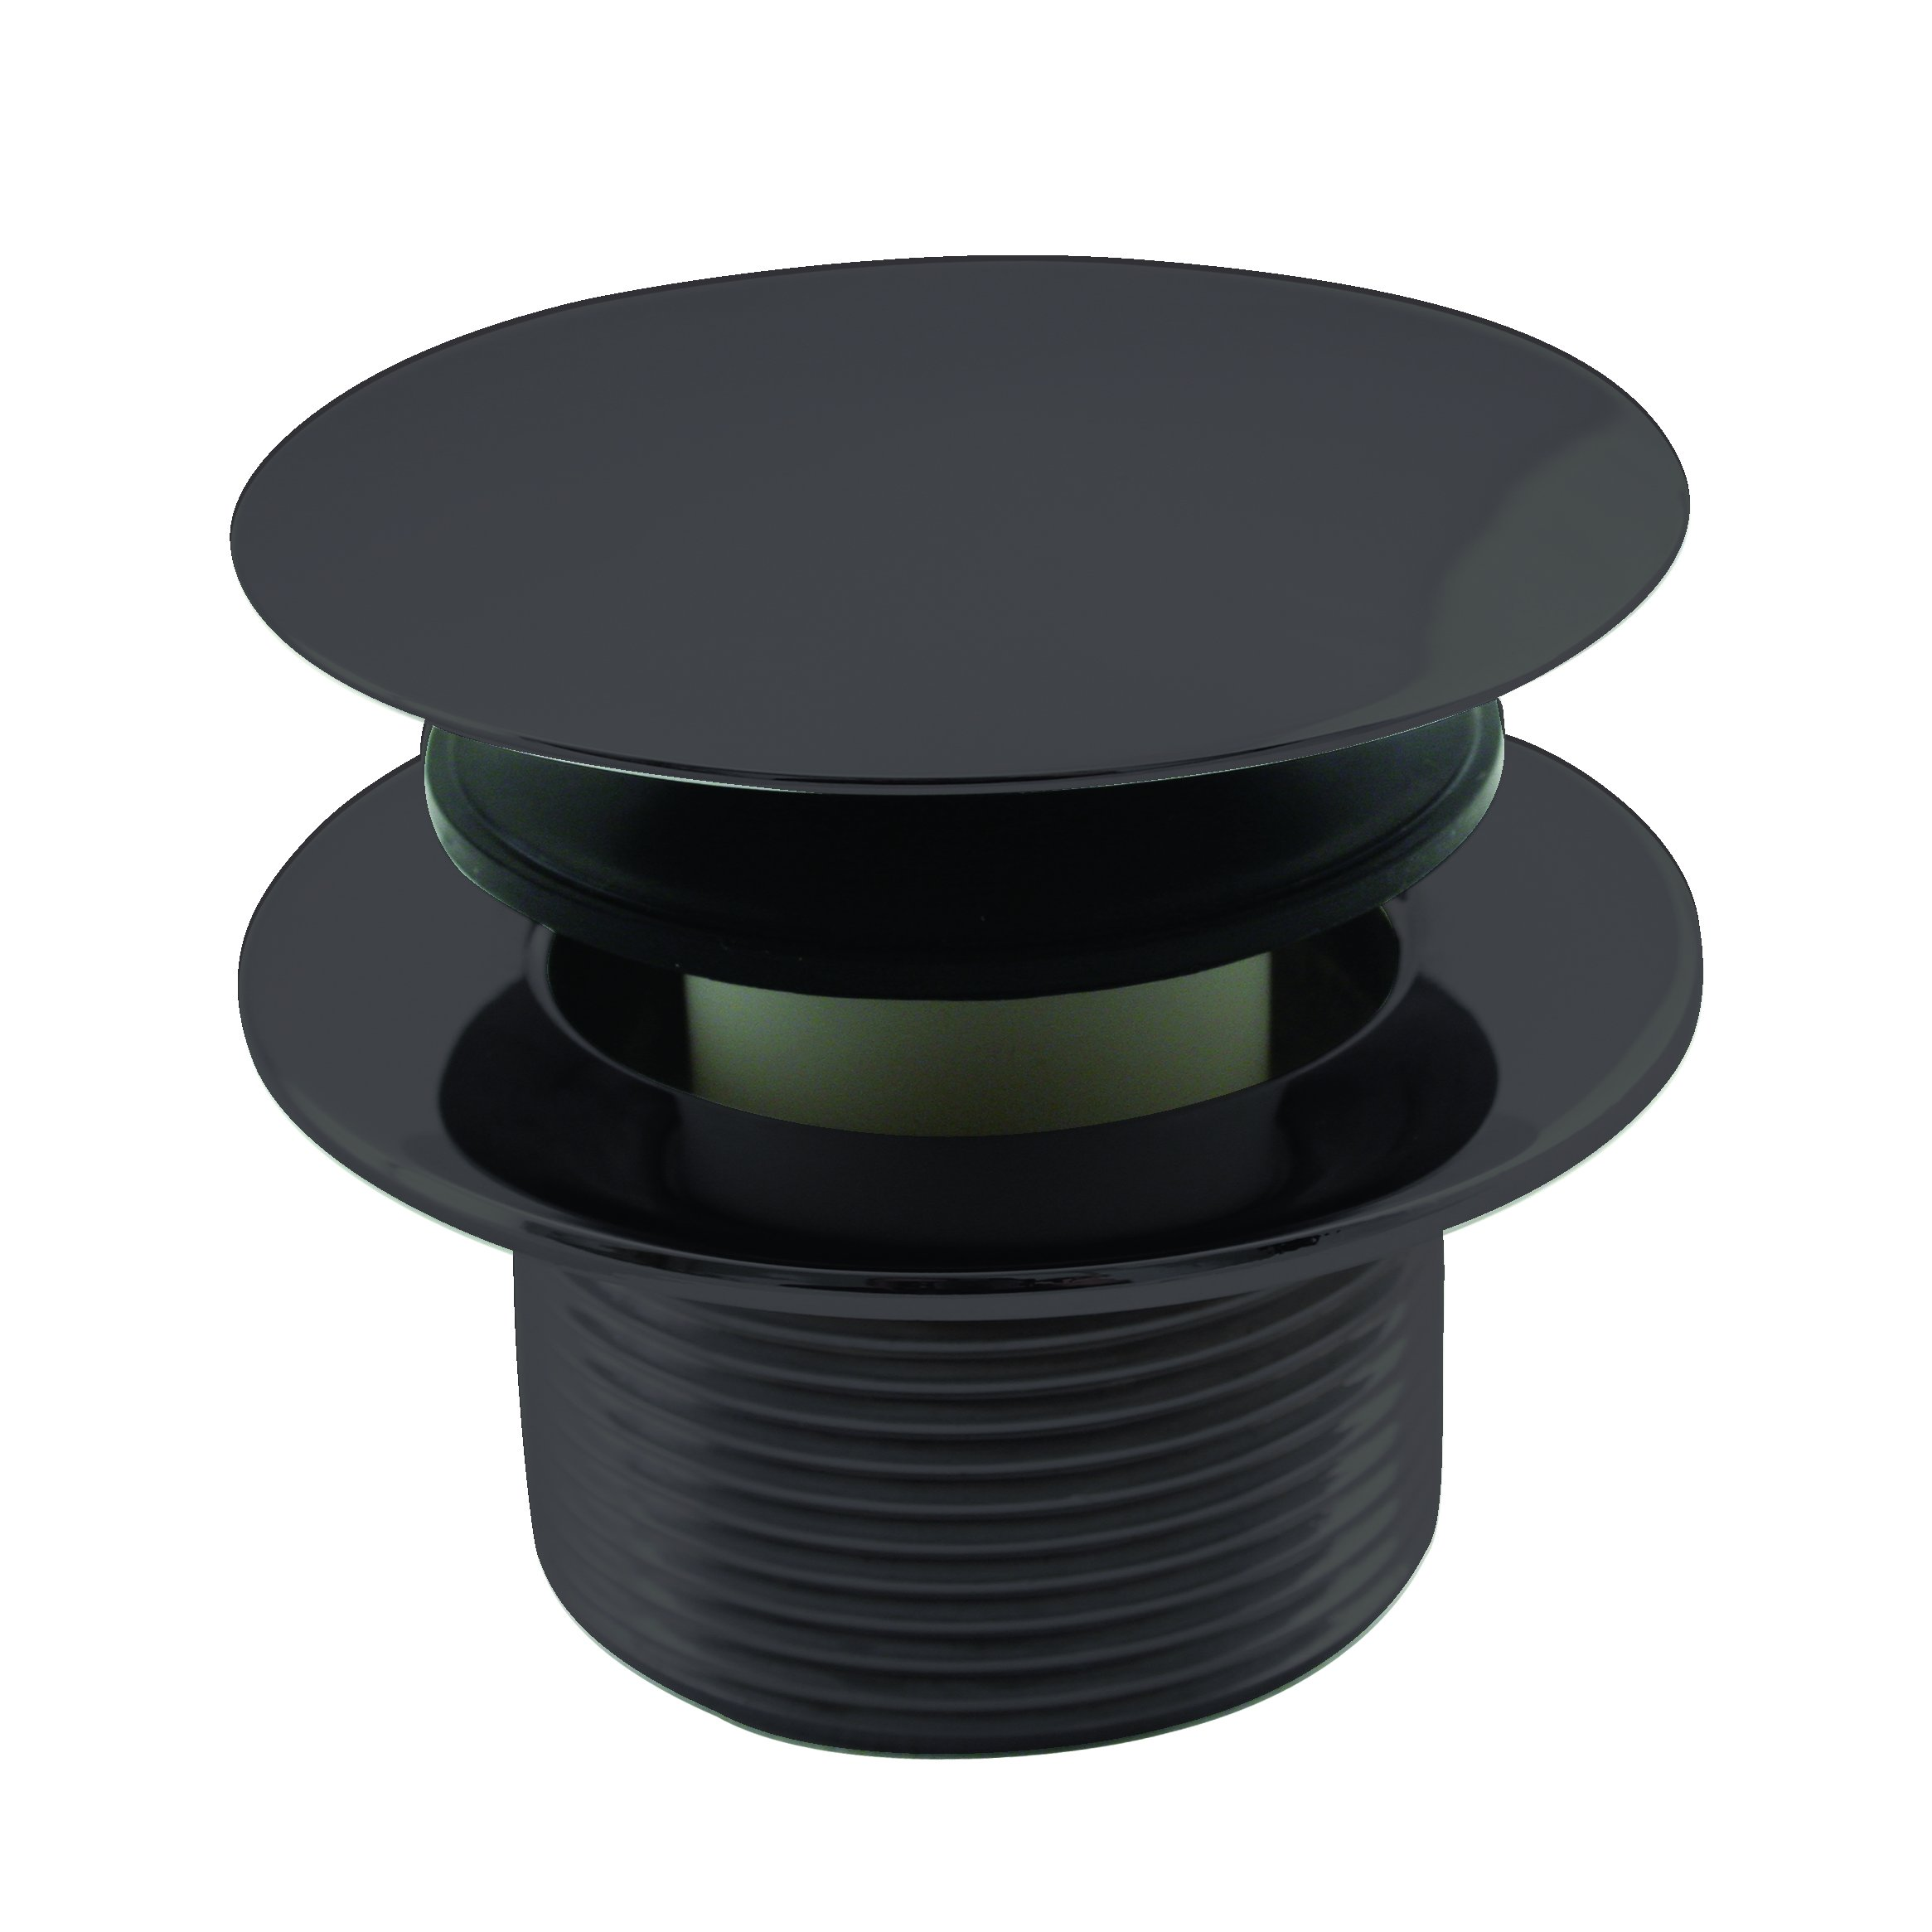 Westbrass 1-1/2'' NPSM Coarse Thread Tip-Toe Bathtub Drain Plug, Oil Rubbed Bronze, D398R-12